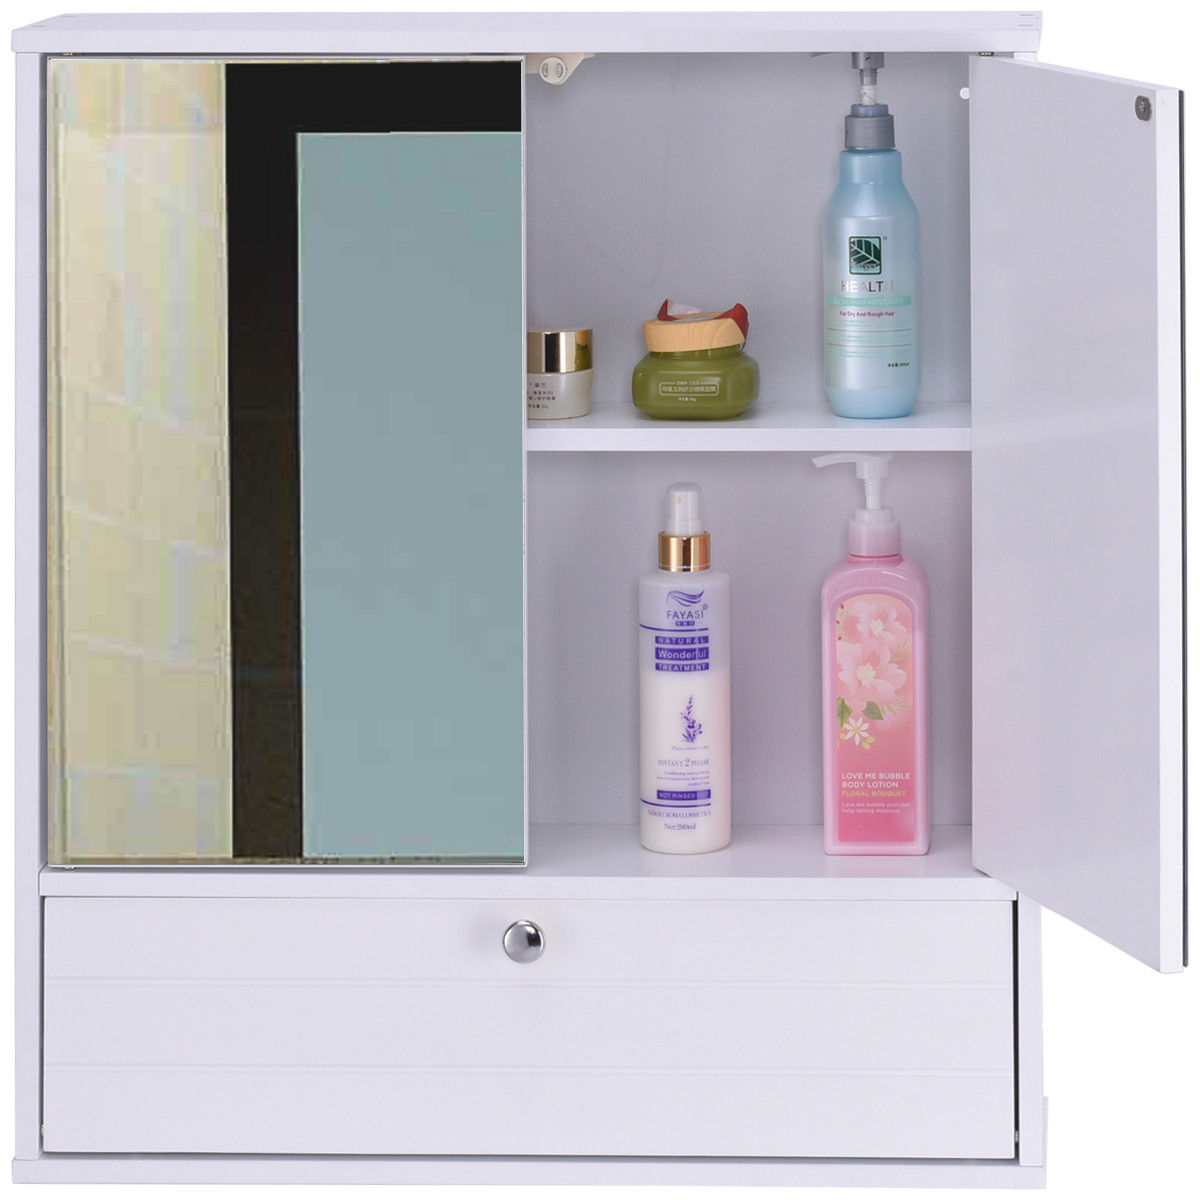 Bathroom Shelves - Bright Bathroom